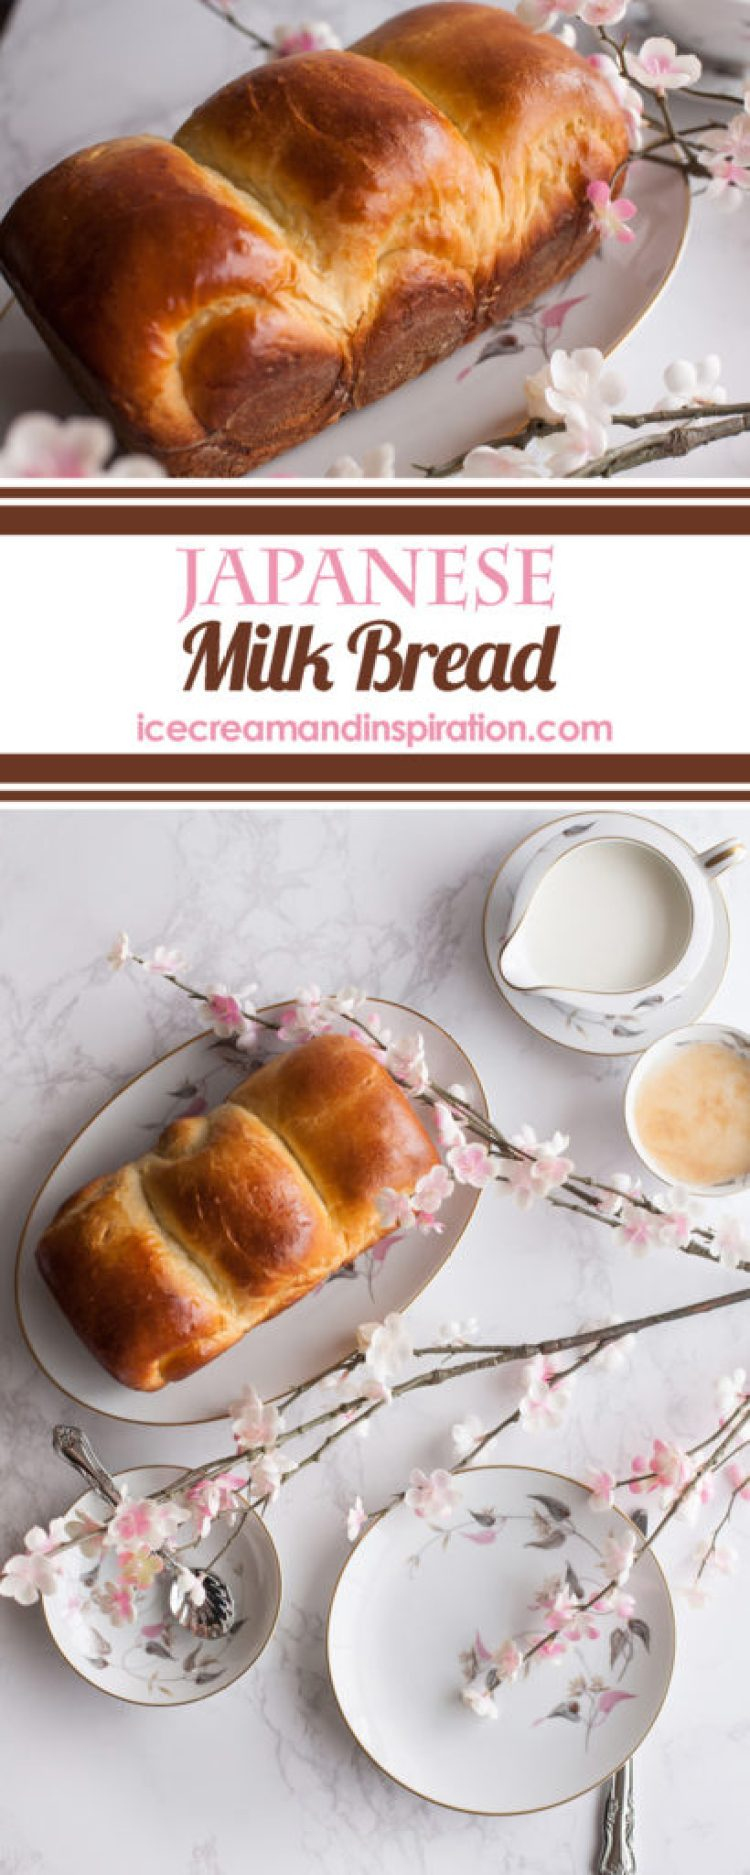 Classic Japanese Milk Bread made with cream, milk, and an extra special something that makes it super soft, fluffy, and moist. Stays fresh for days longer than regular bread. What is Japanese Milk Bread? (Otherwise known as Shokupan or Hokkaido Milk Bread). It's only the best bread in the world, and I'll tell you why.